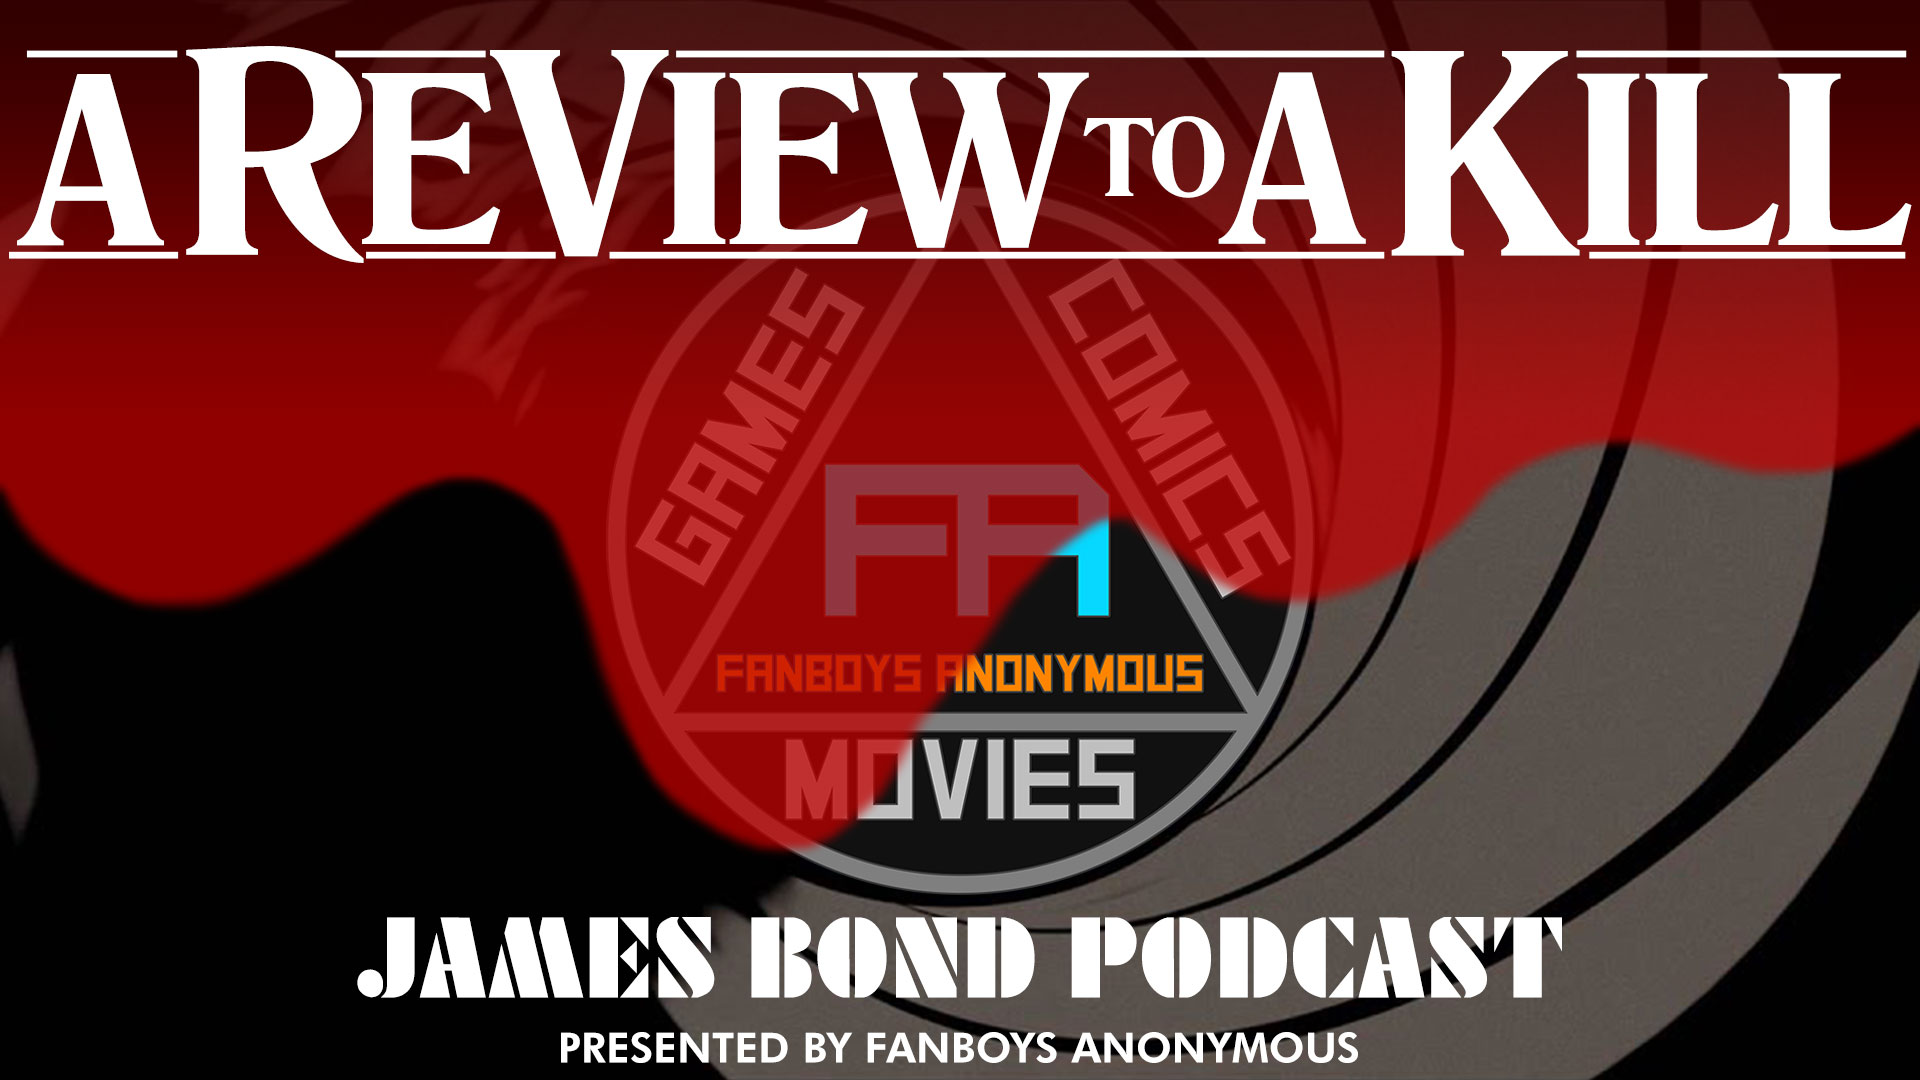 James Bond A Review to a Kill 007 podcast